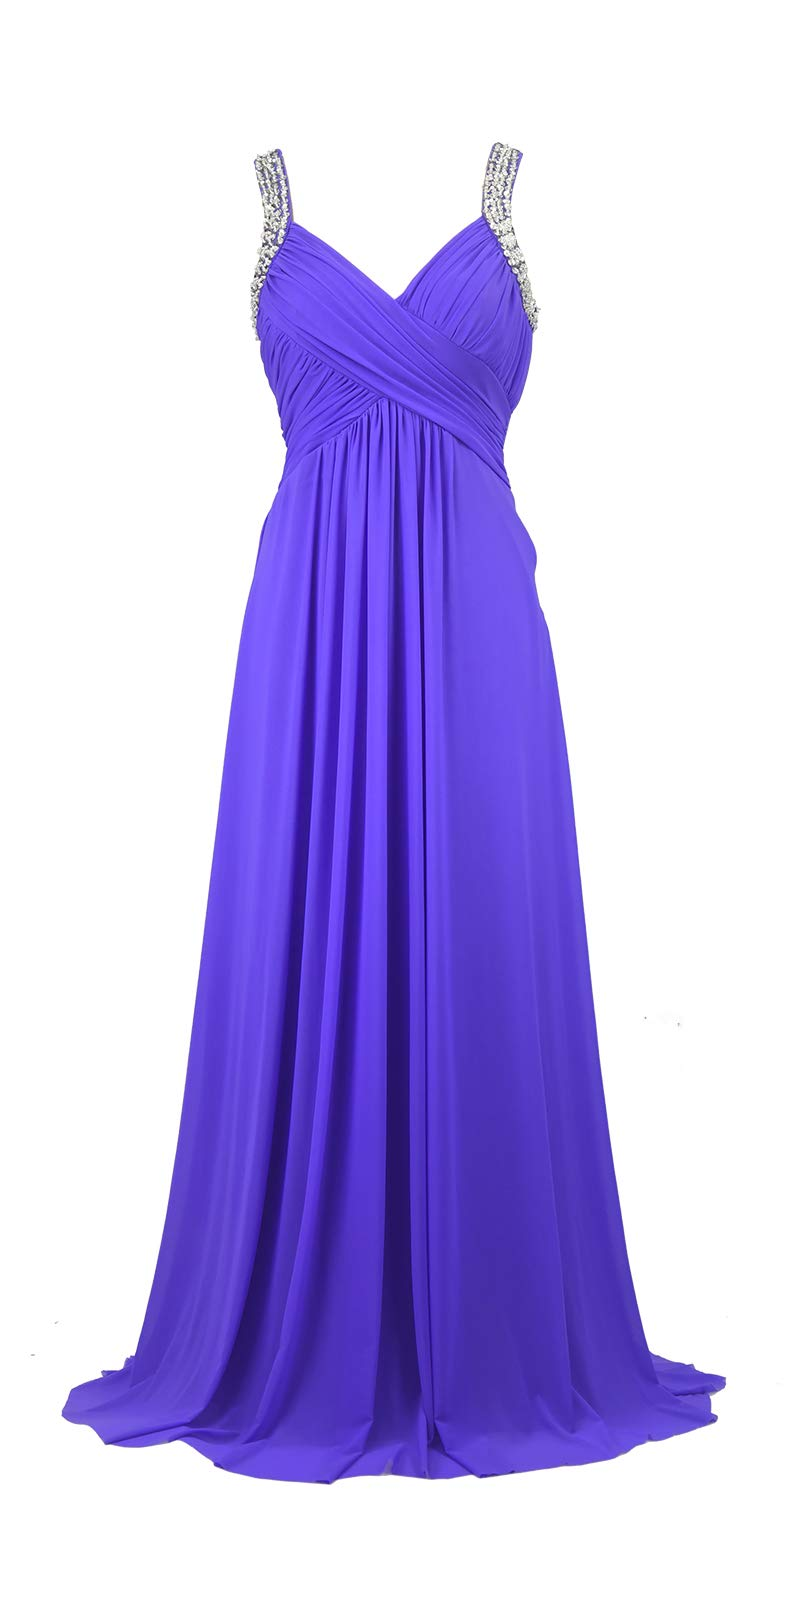 Available at Amazon: Conail Coco Women's Tulle Beading A-Line Bridesmaid Prom Dresses Long Cocktail Evening Gowns